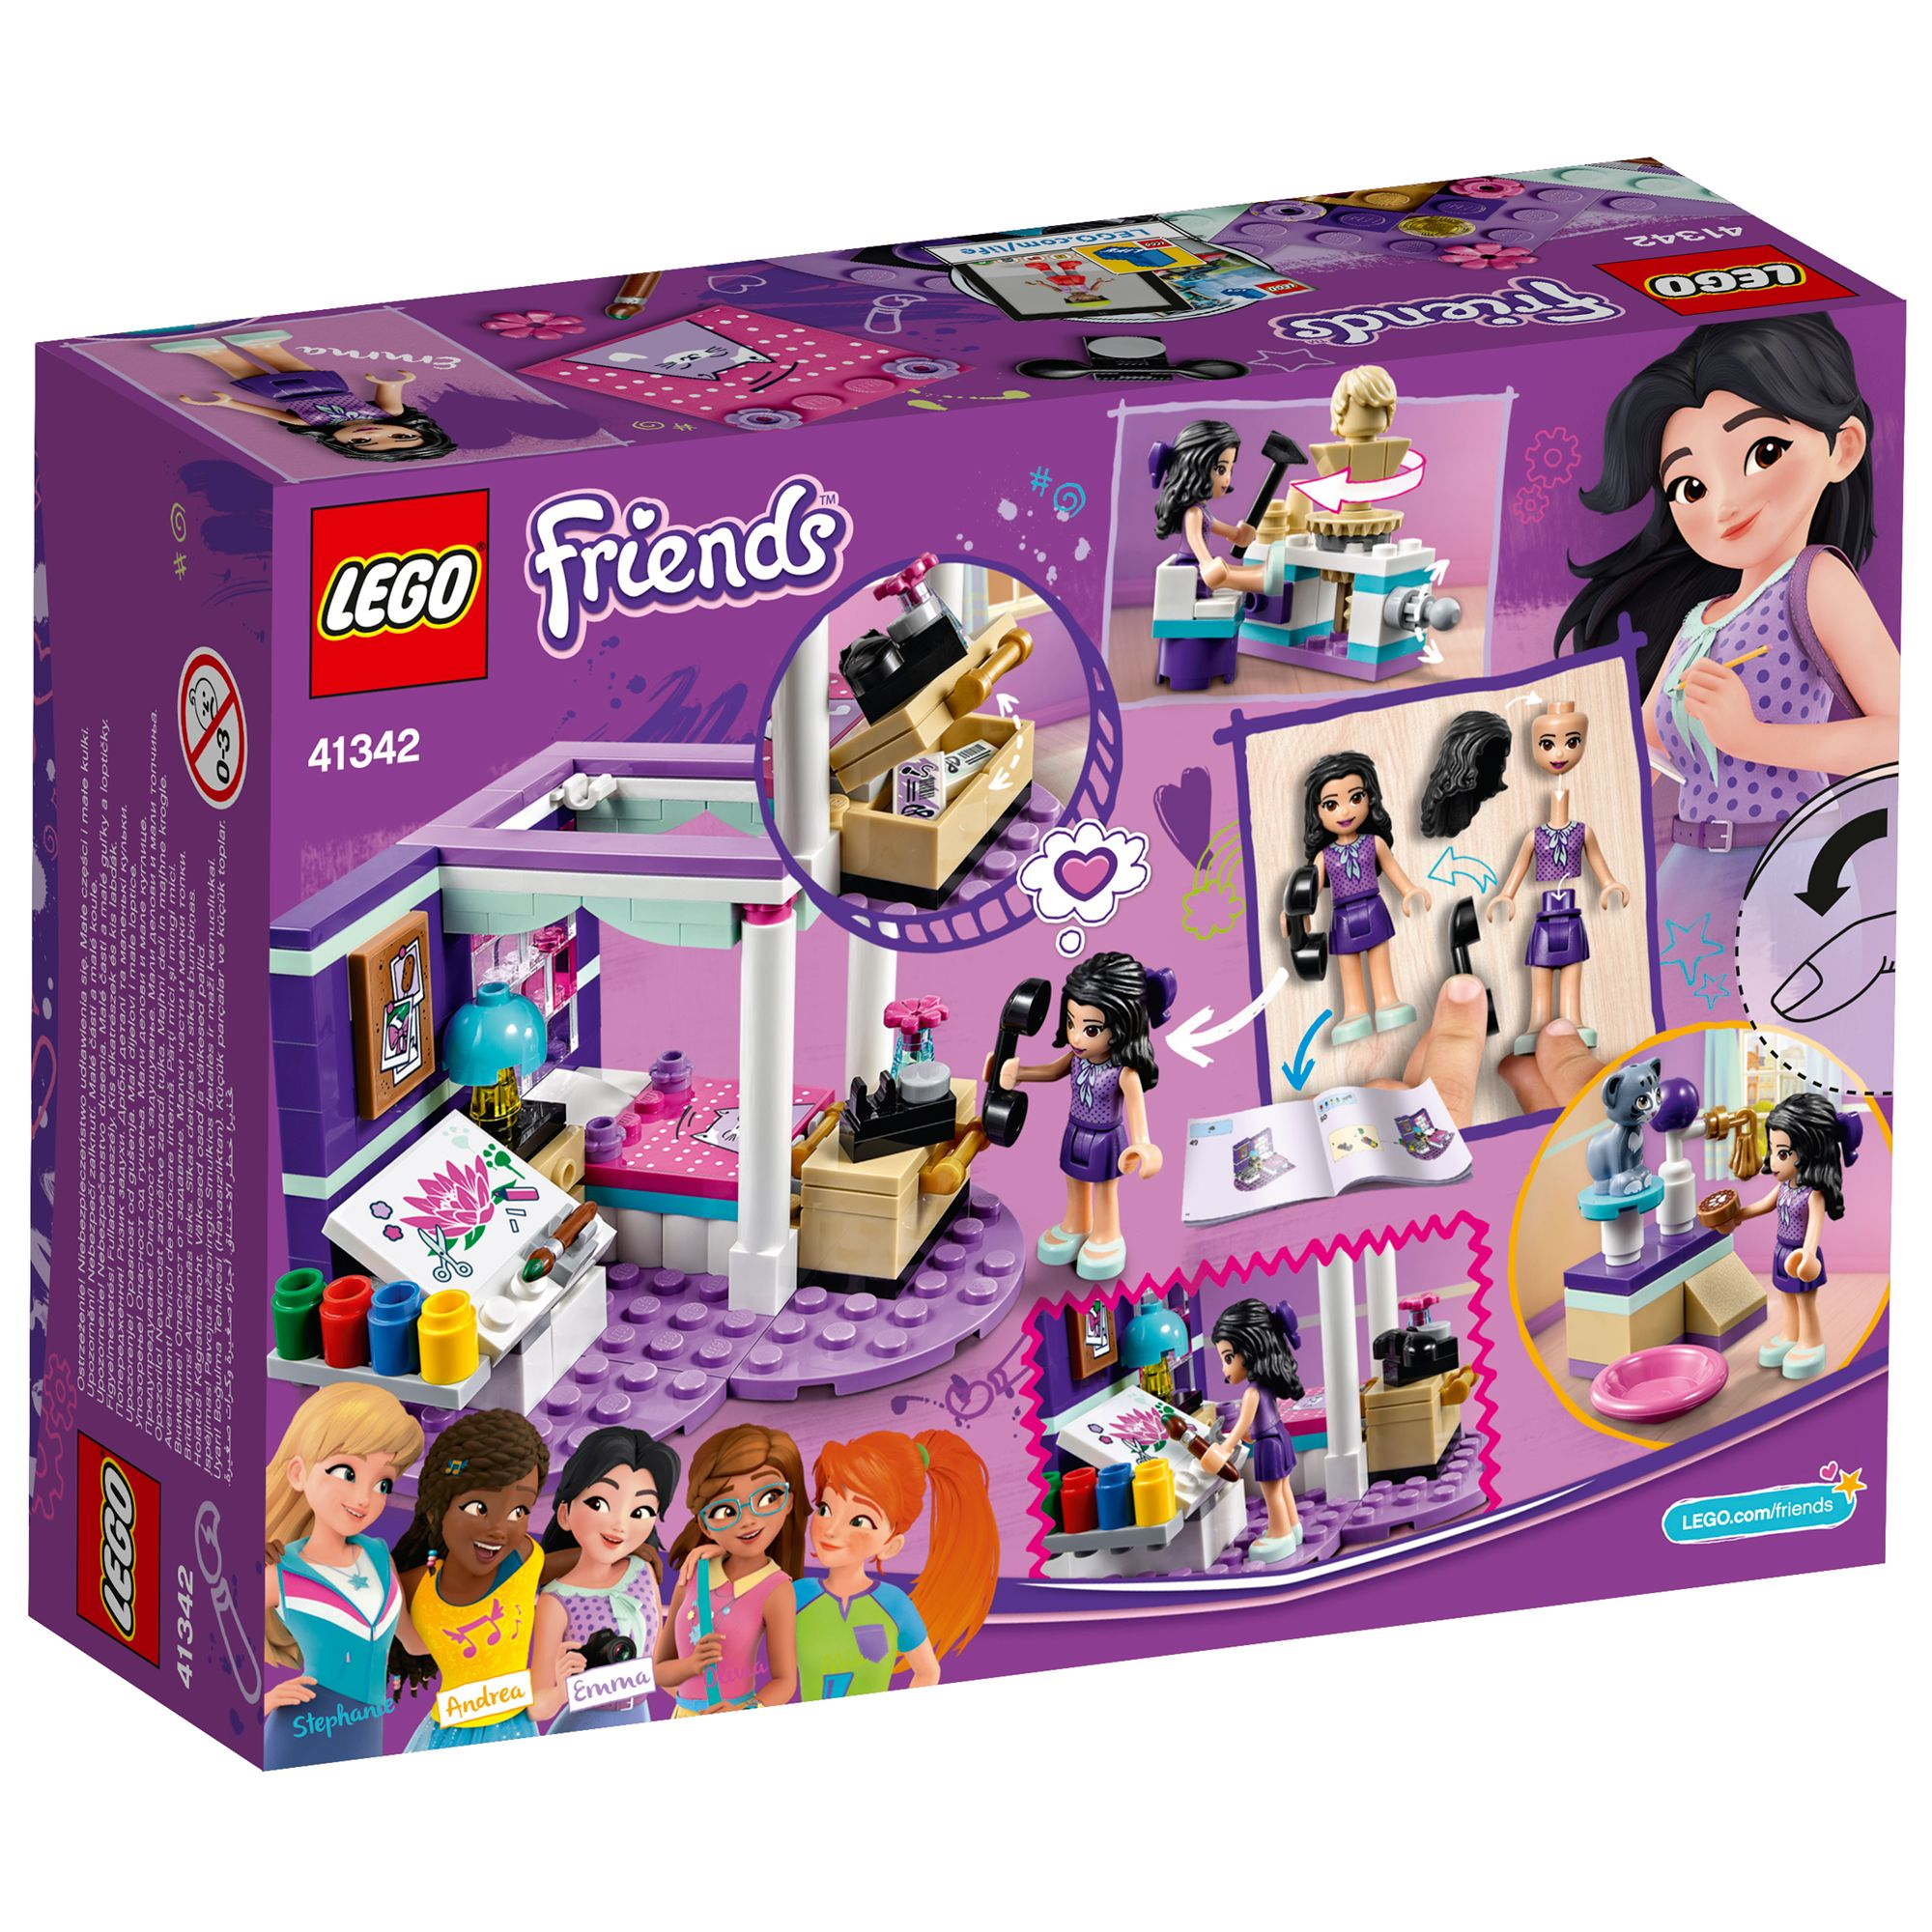 Lego Friends Christmas Sets.Lego Friends 41342 Emma S Deluxe Bedroom